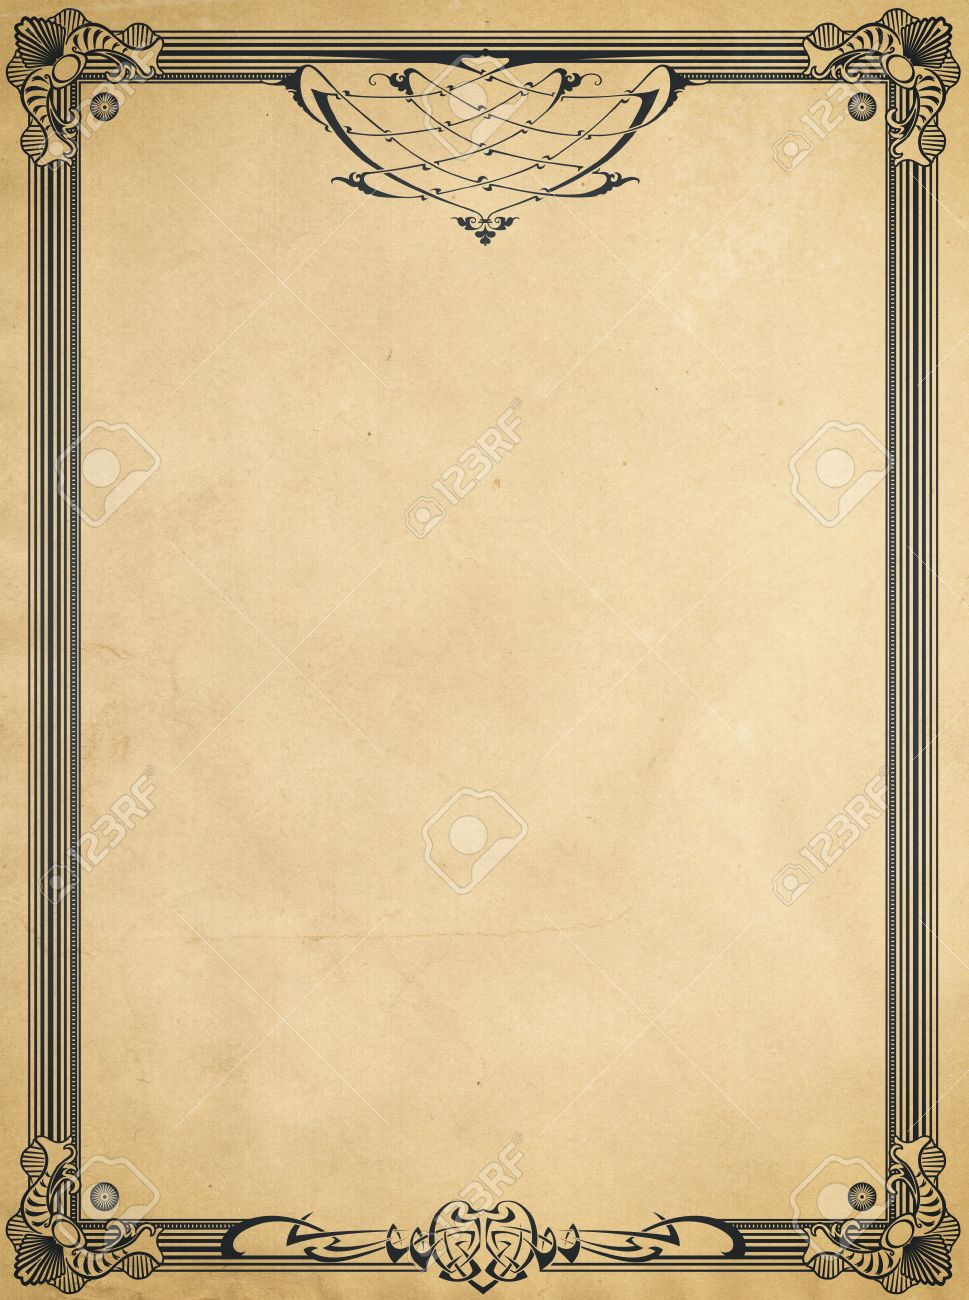 decorative vintage border on old paper background. stock photo